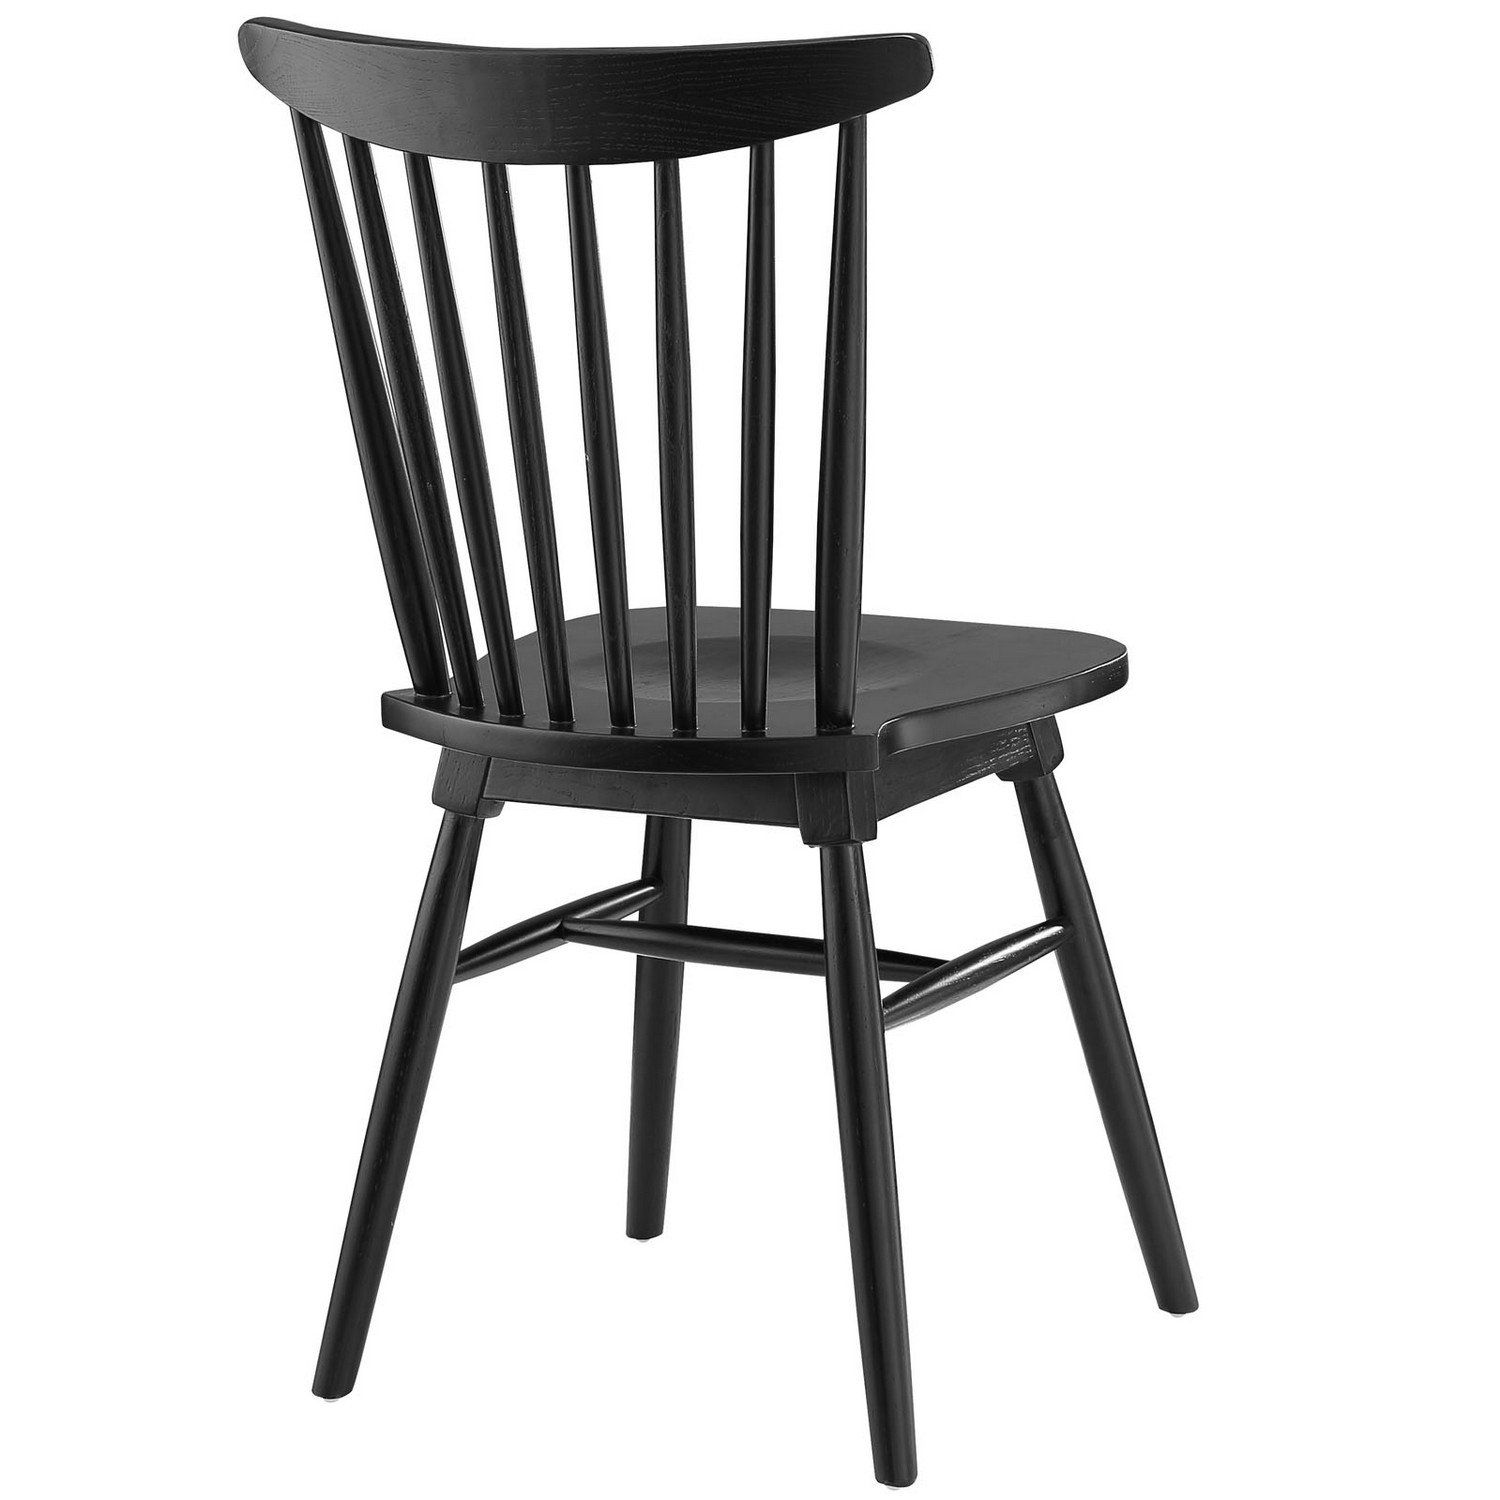 Modway Amble Dining Side Chair - Black